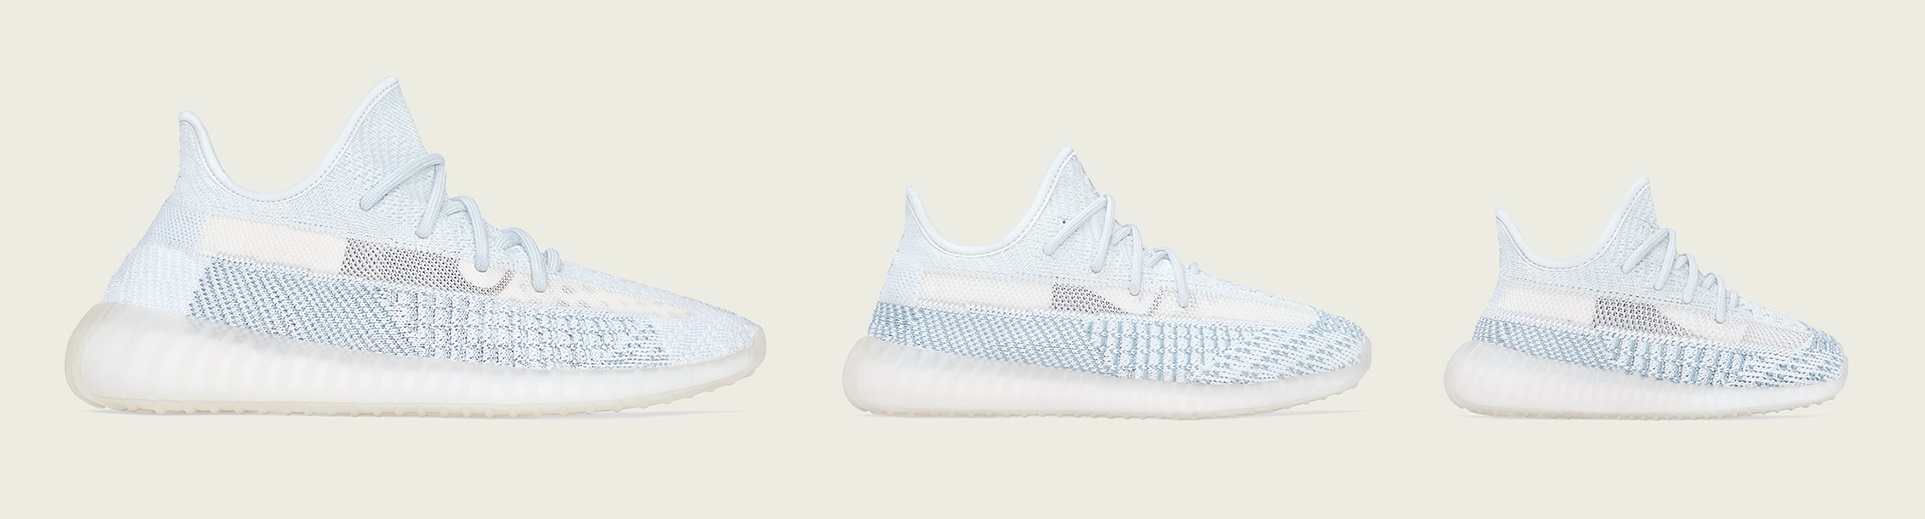 Yeezy Boost 350 V2 Cloud White Full Family Sizes